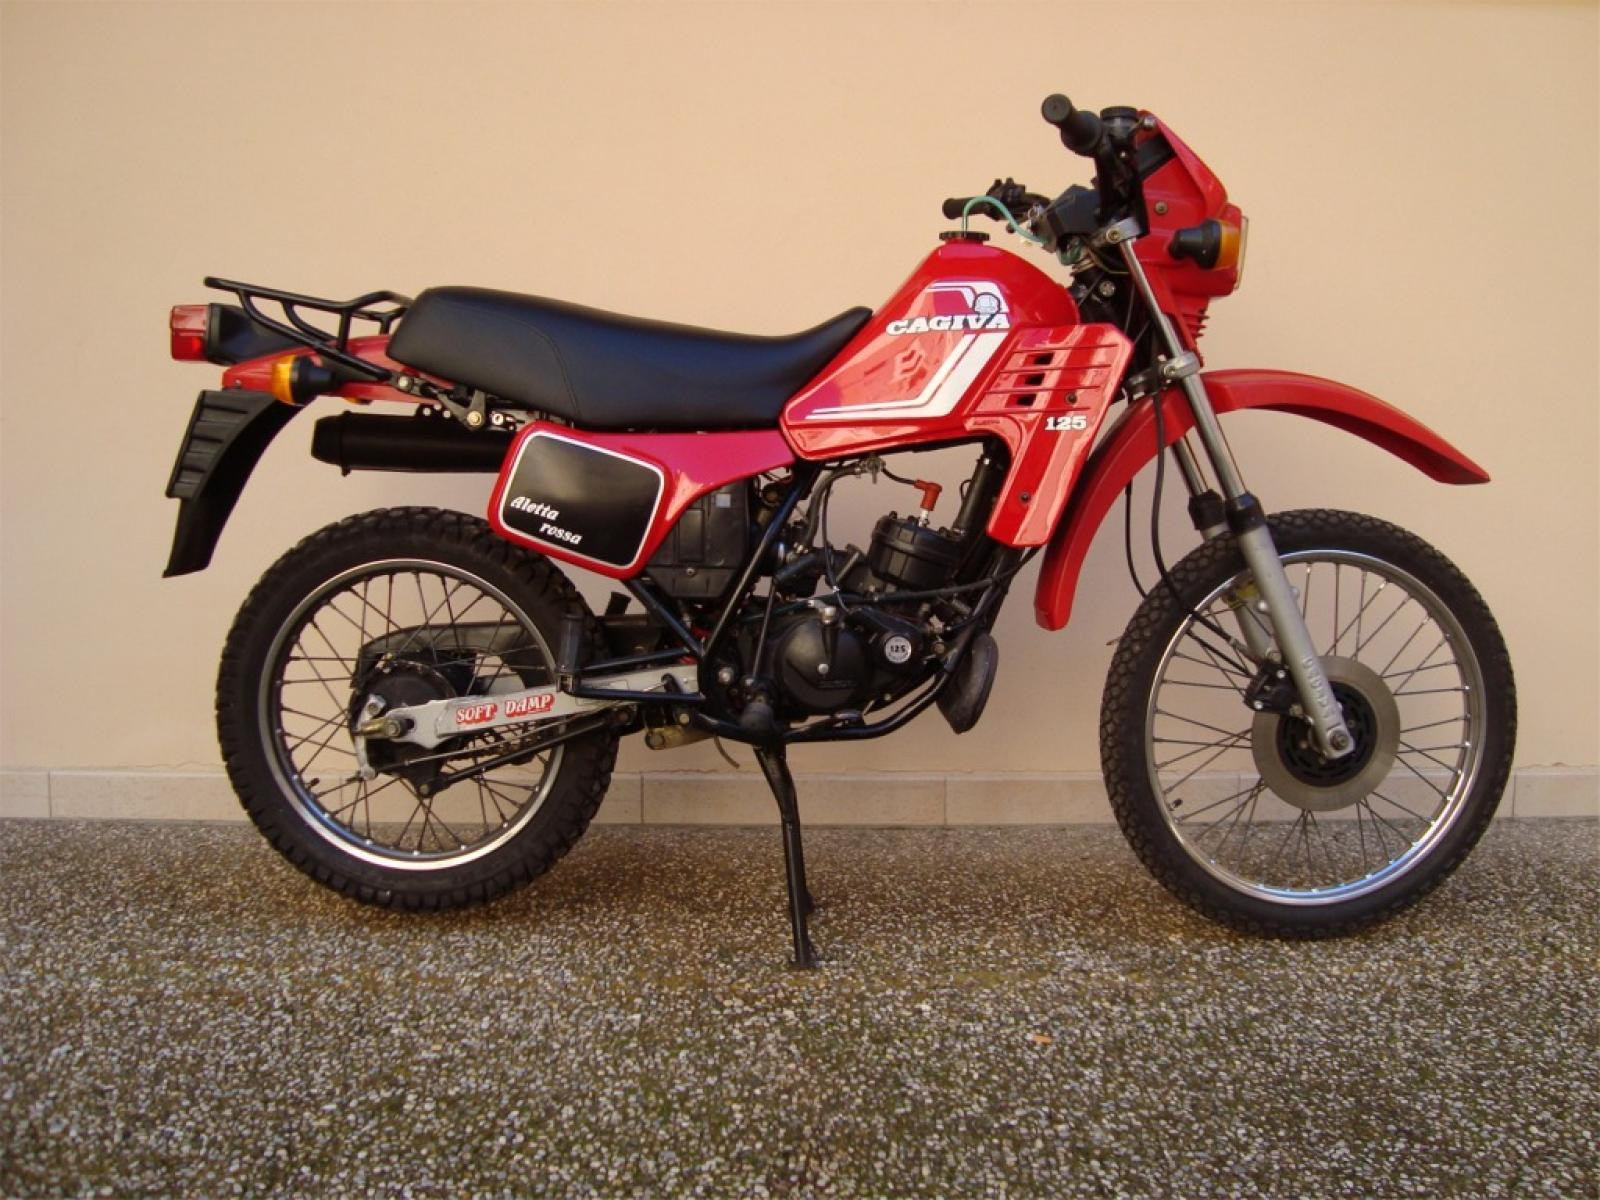 Cagiva SX 250 1983 images #67997